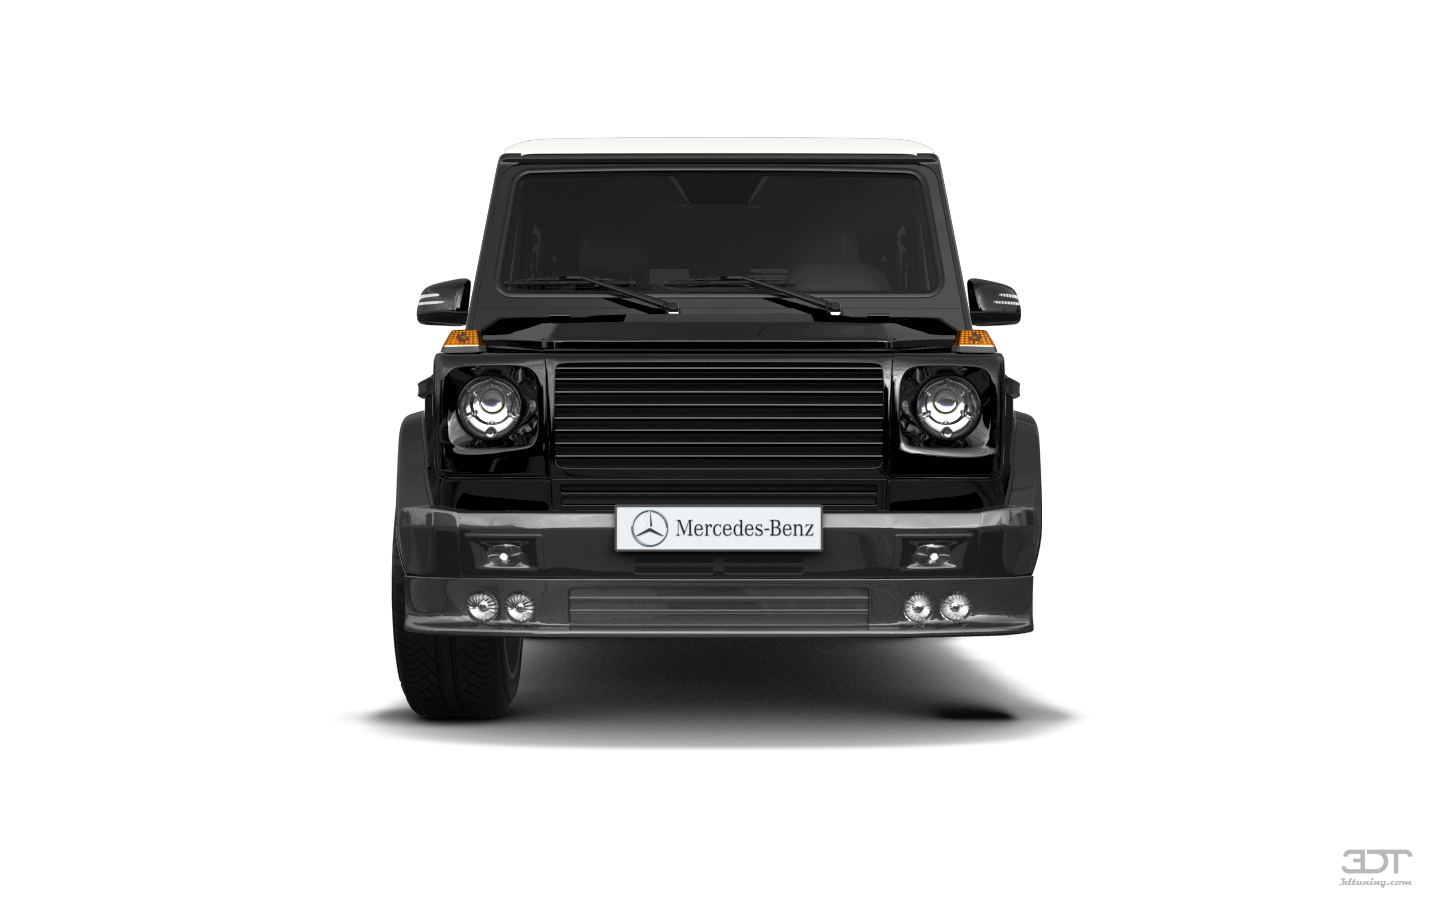 Mercedes G-Class'13 by Jaimy Somers